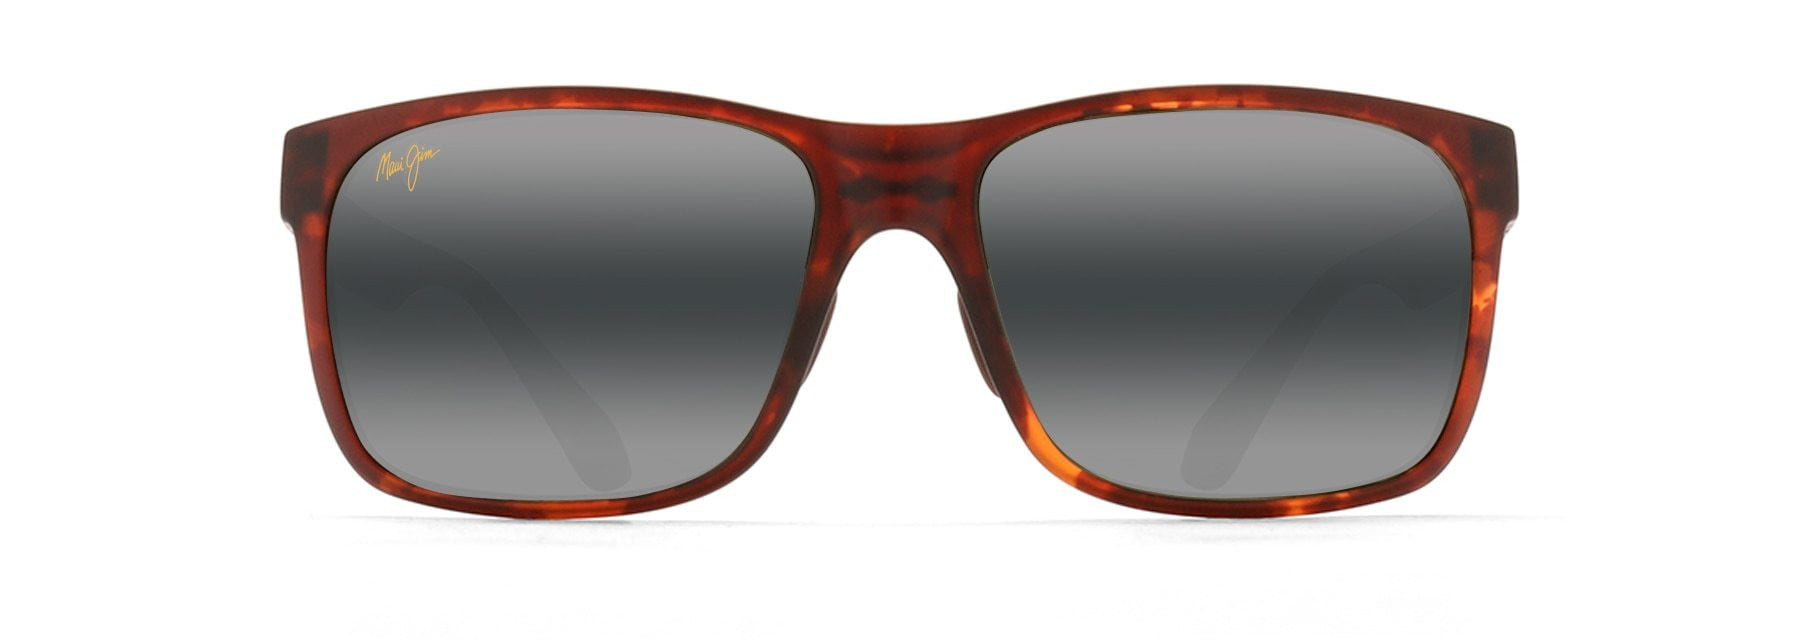 MyMaui Red Sands MM432-005 Sunglasses